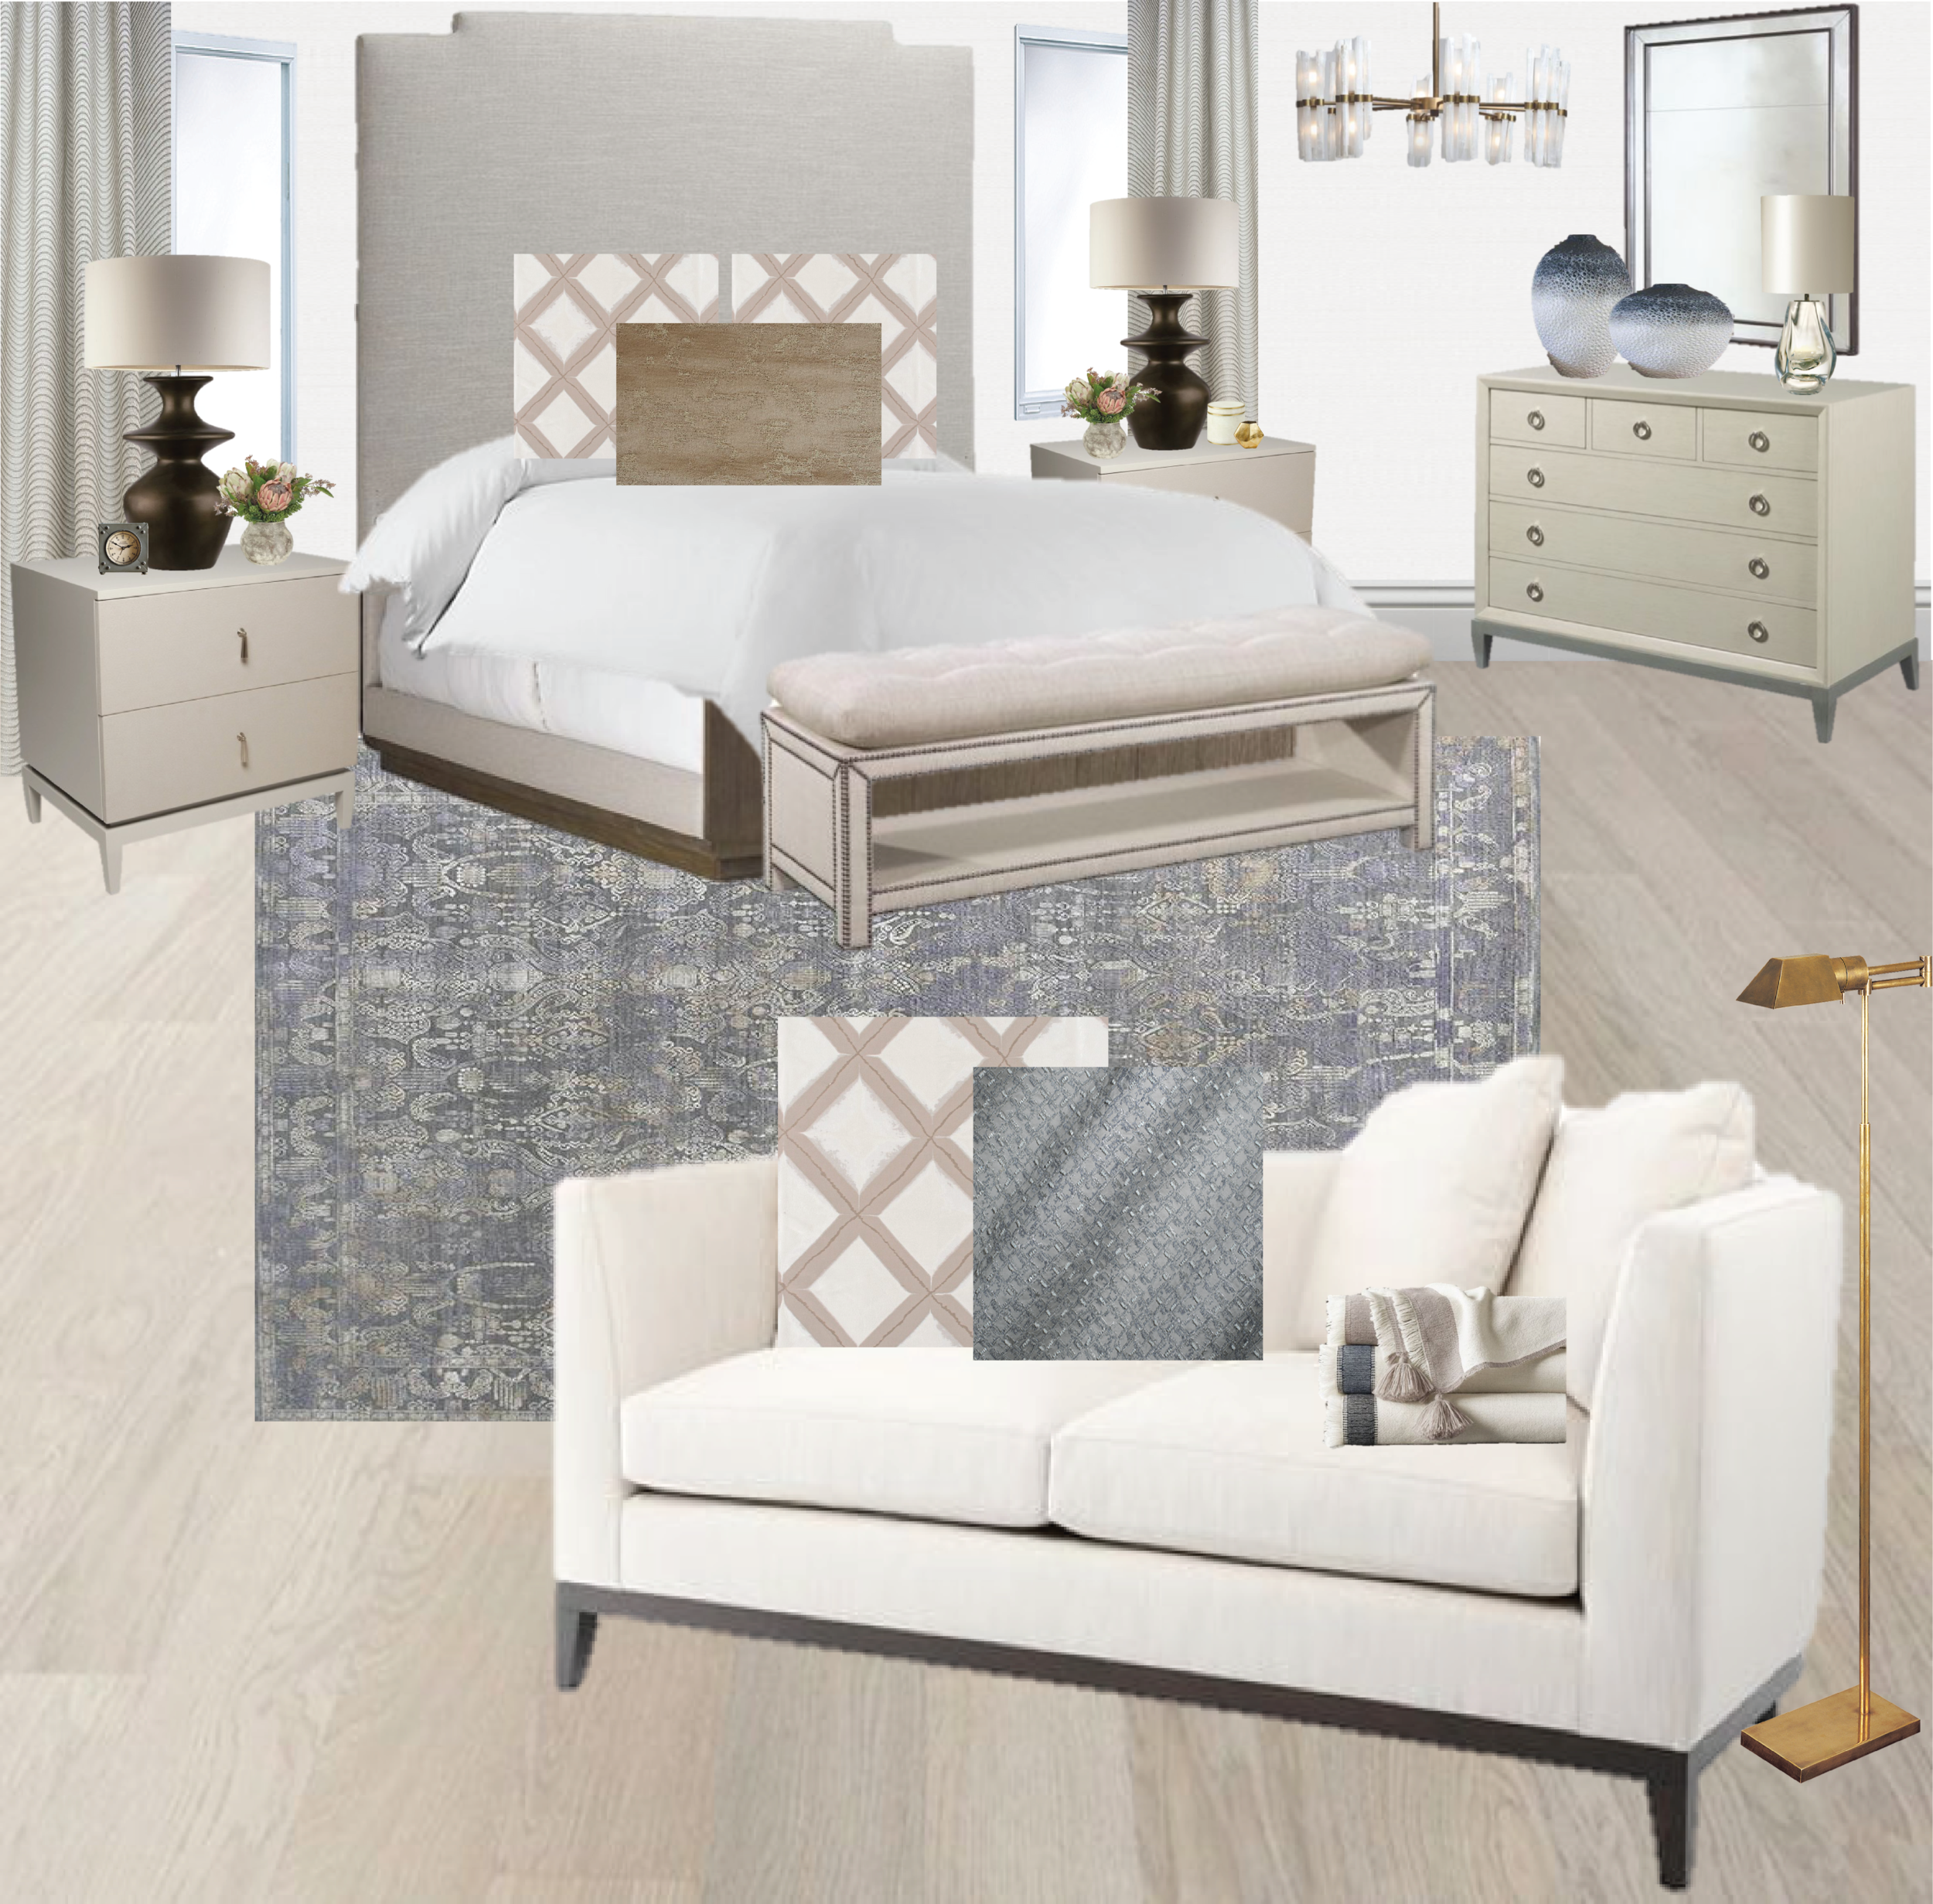 Master bedroom ideas  white walls   master bedroom   guest bedroom ideas   bronze table lamp   brass lamp   rock crystal chandelier   blue rug   purple rug   vintage rug   small sofa   pom pom throw   Synonymouss.com   Synonymous Interior Design Firm NYC